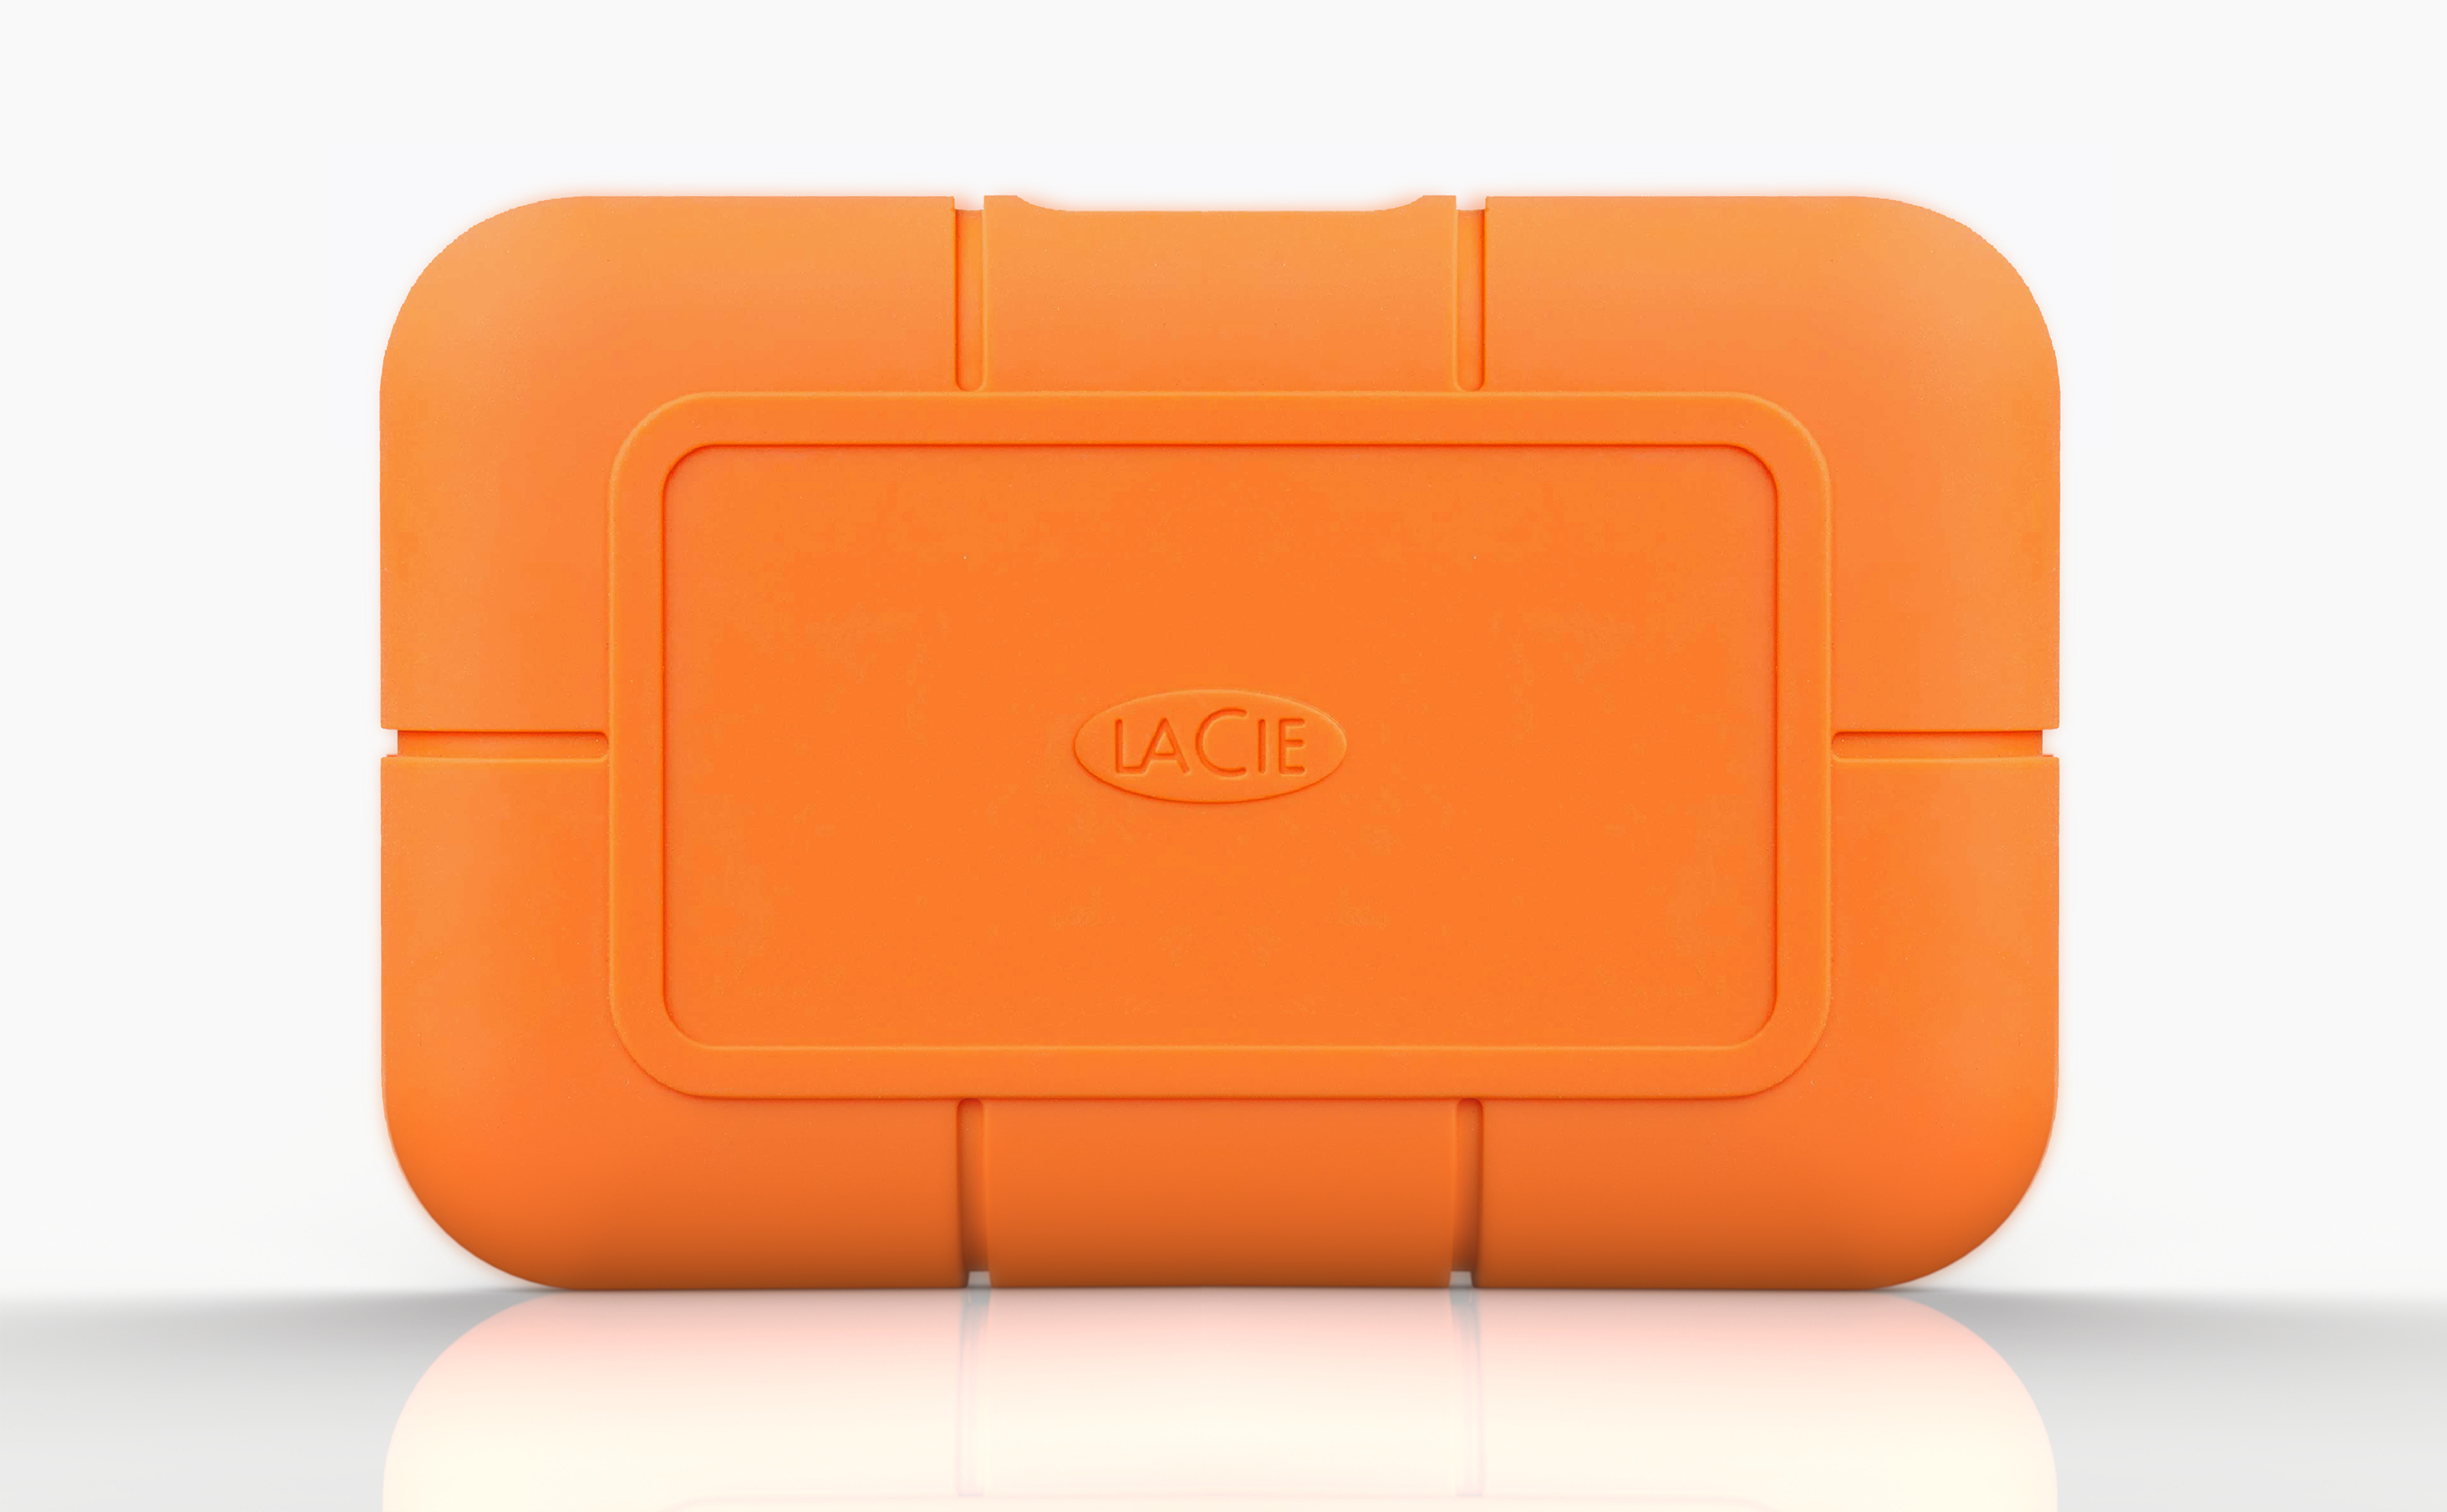 rugged ssd — lacie, 2020